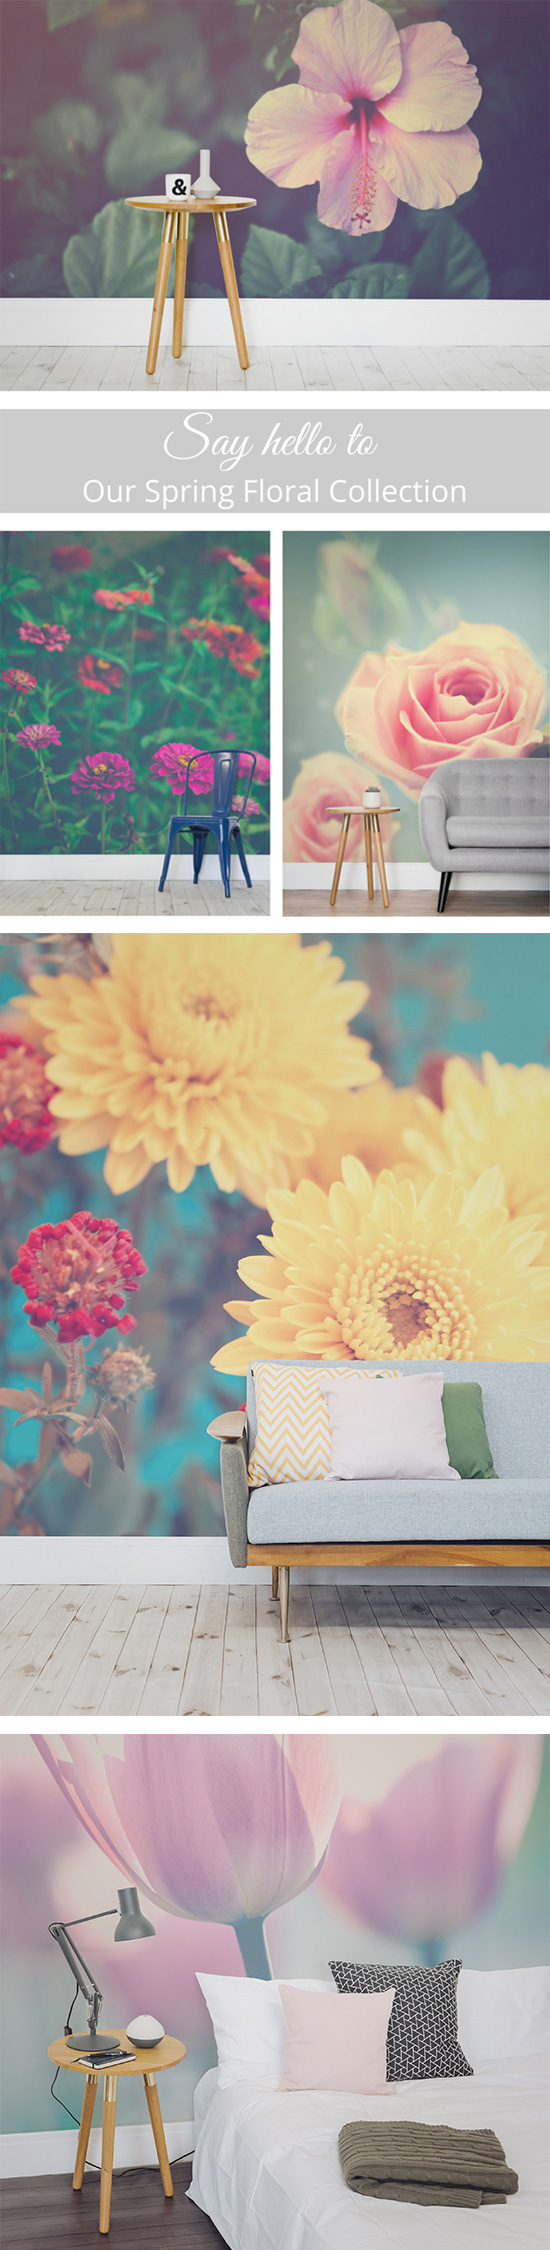 Introducing Our Spring Floral Collection   { WALL } Decorations ...